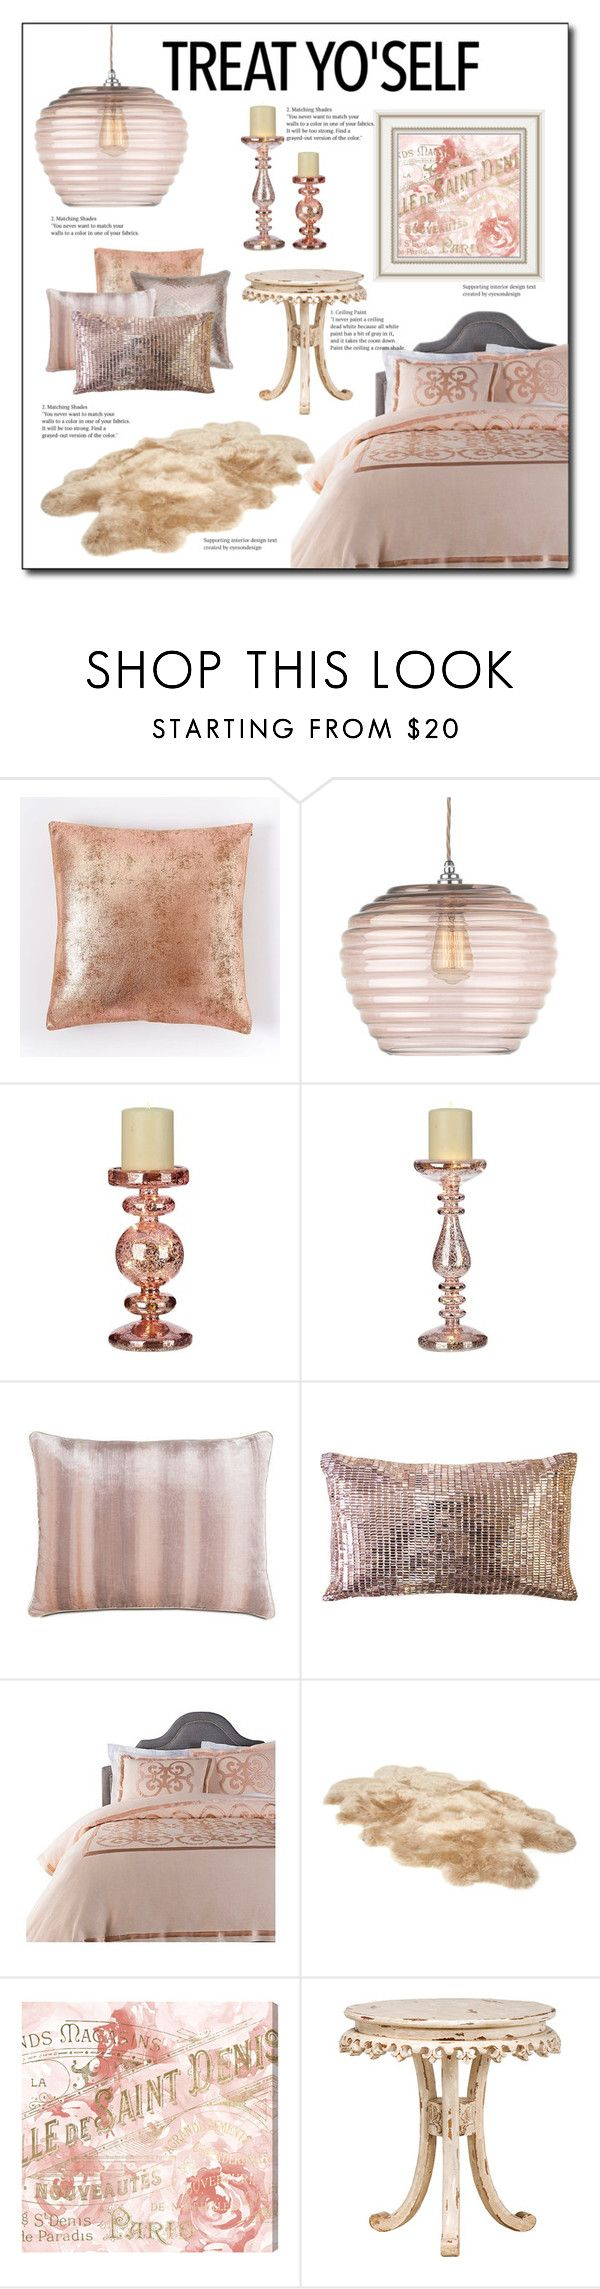 """Bedroom Redesign in Rose Gold (Blush)"" by ladydivaboss ❤ liked on Polyvore featuring interior, interiors, interior design, home, home decor, interior decorating, West Elm, Heathfield & Co., Frontgate and Ted Baker"